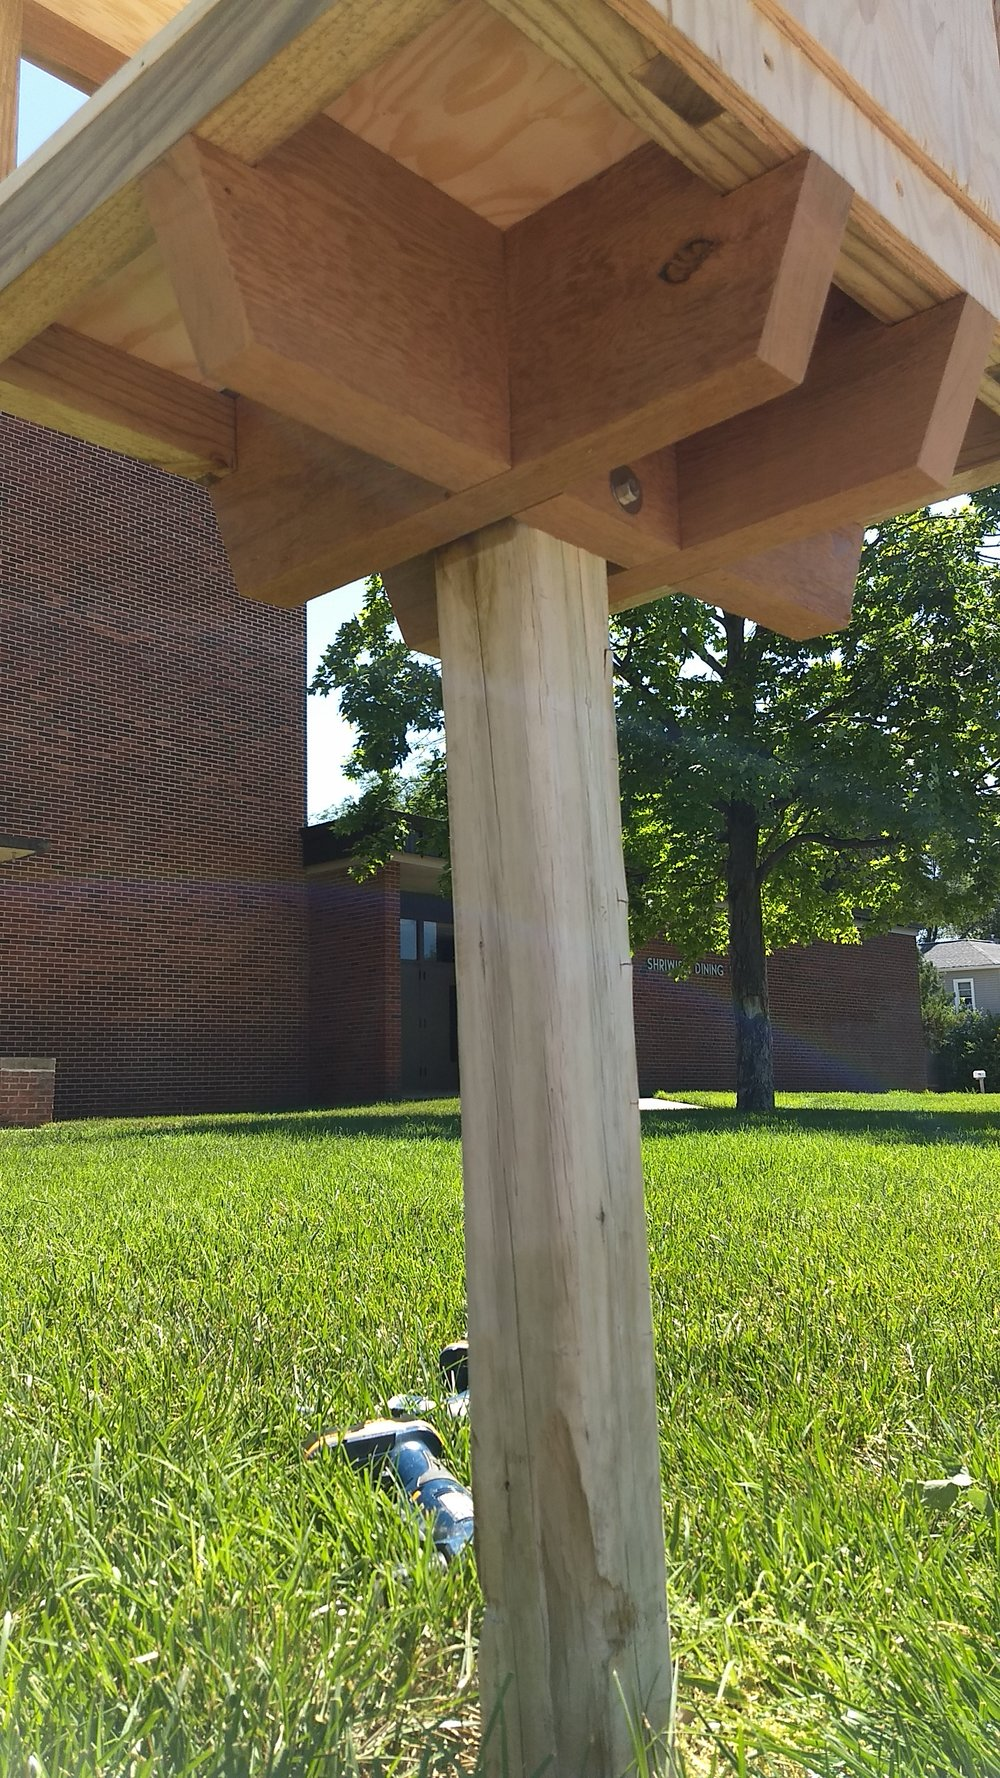 View from below. Here we are test-fitting the mounting system on the existing post. It will work just fine.